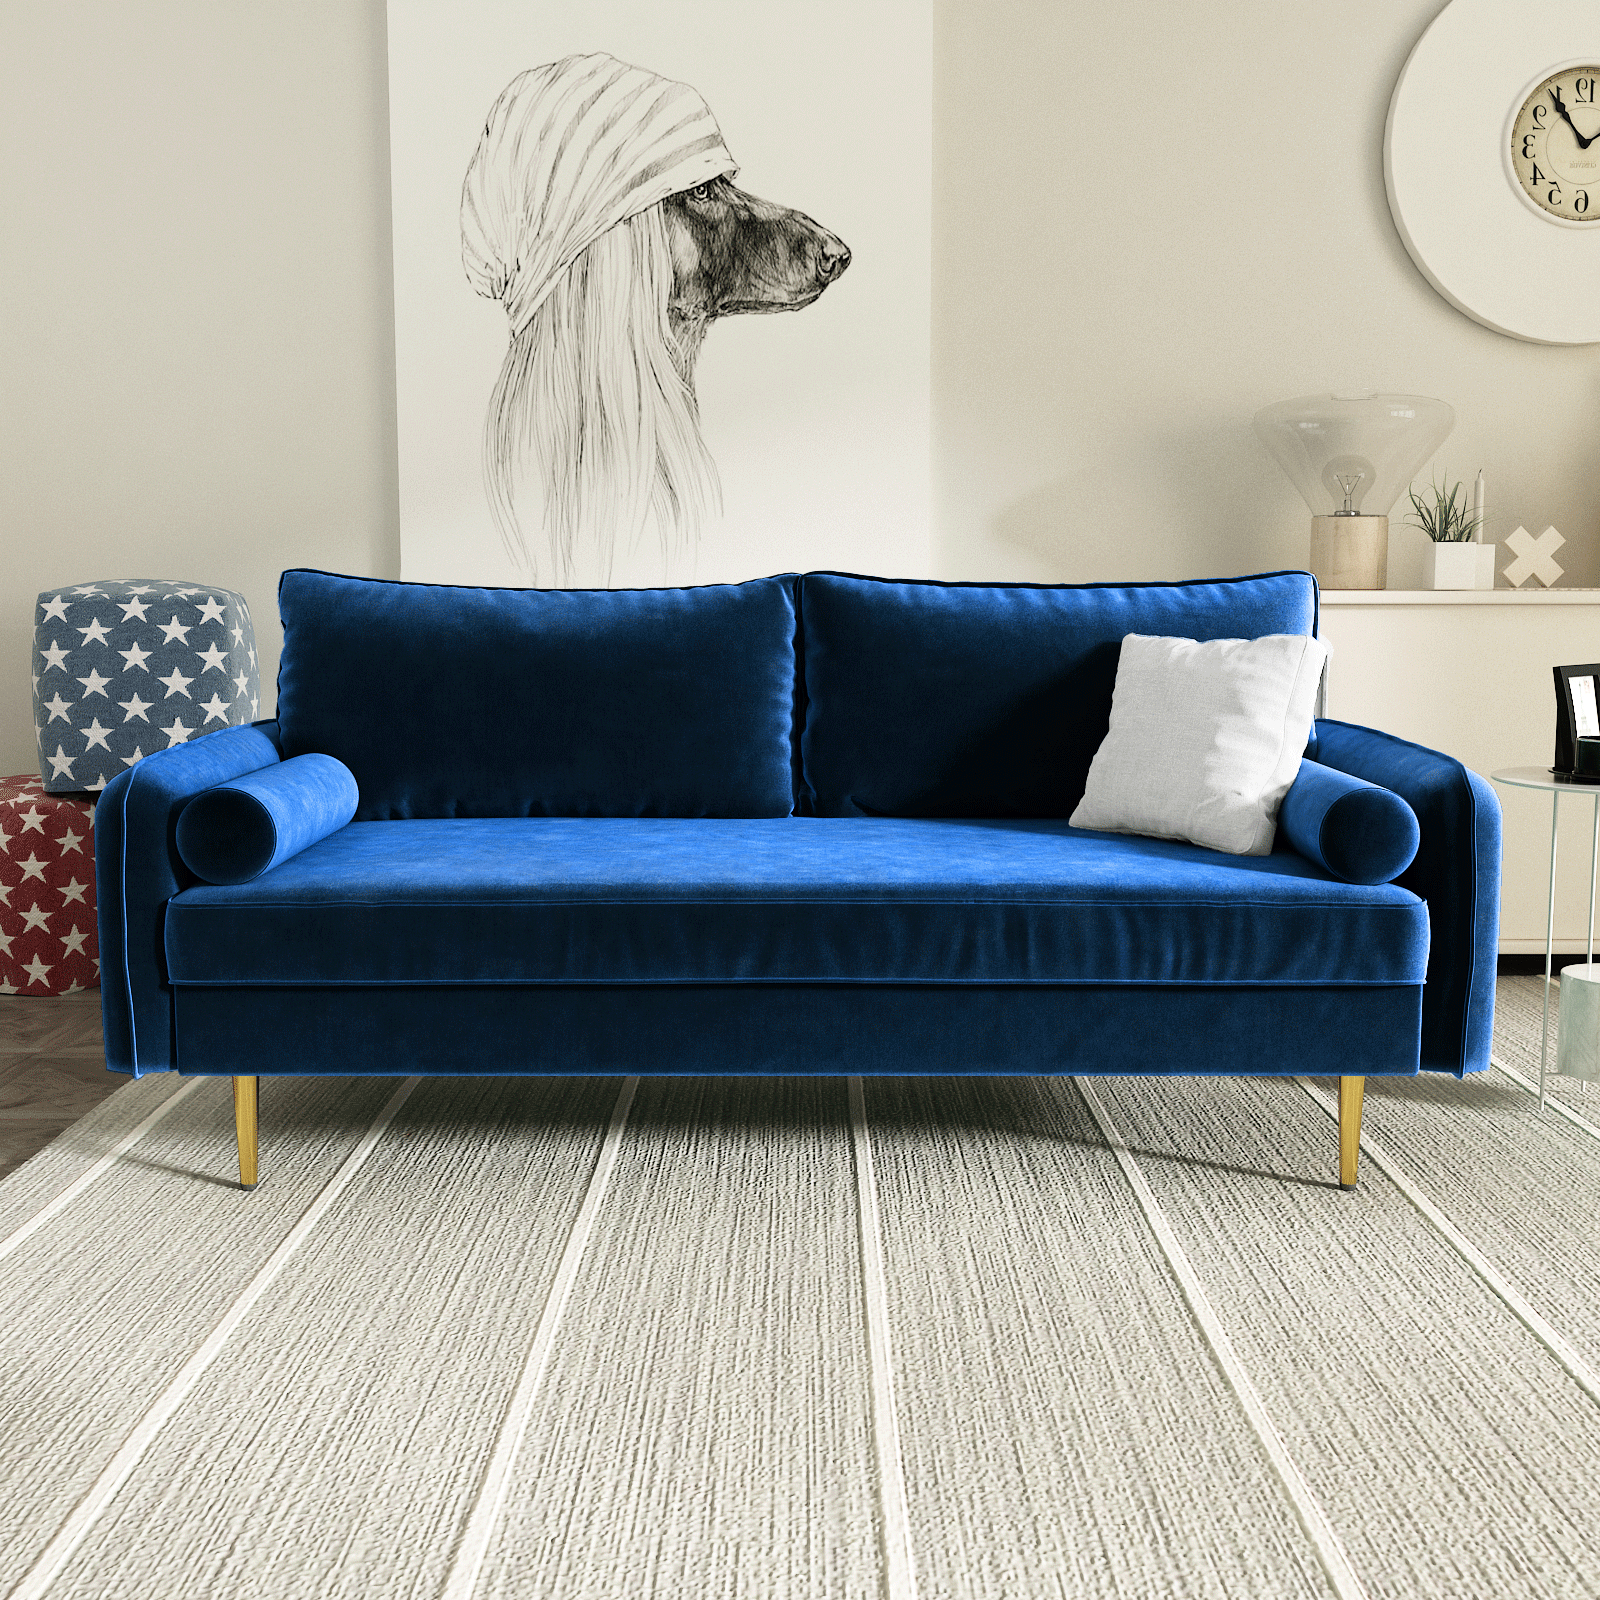 Strummer Velvet Sectional Sofas Throughout Well Liked Maryjanet Velvet Sofa Range In Space Blue Ifurniture The (View 14 of 20)